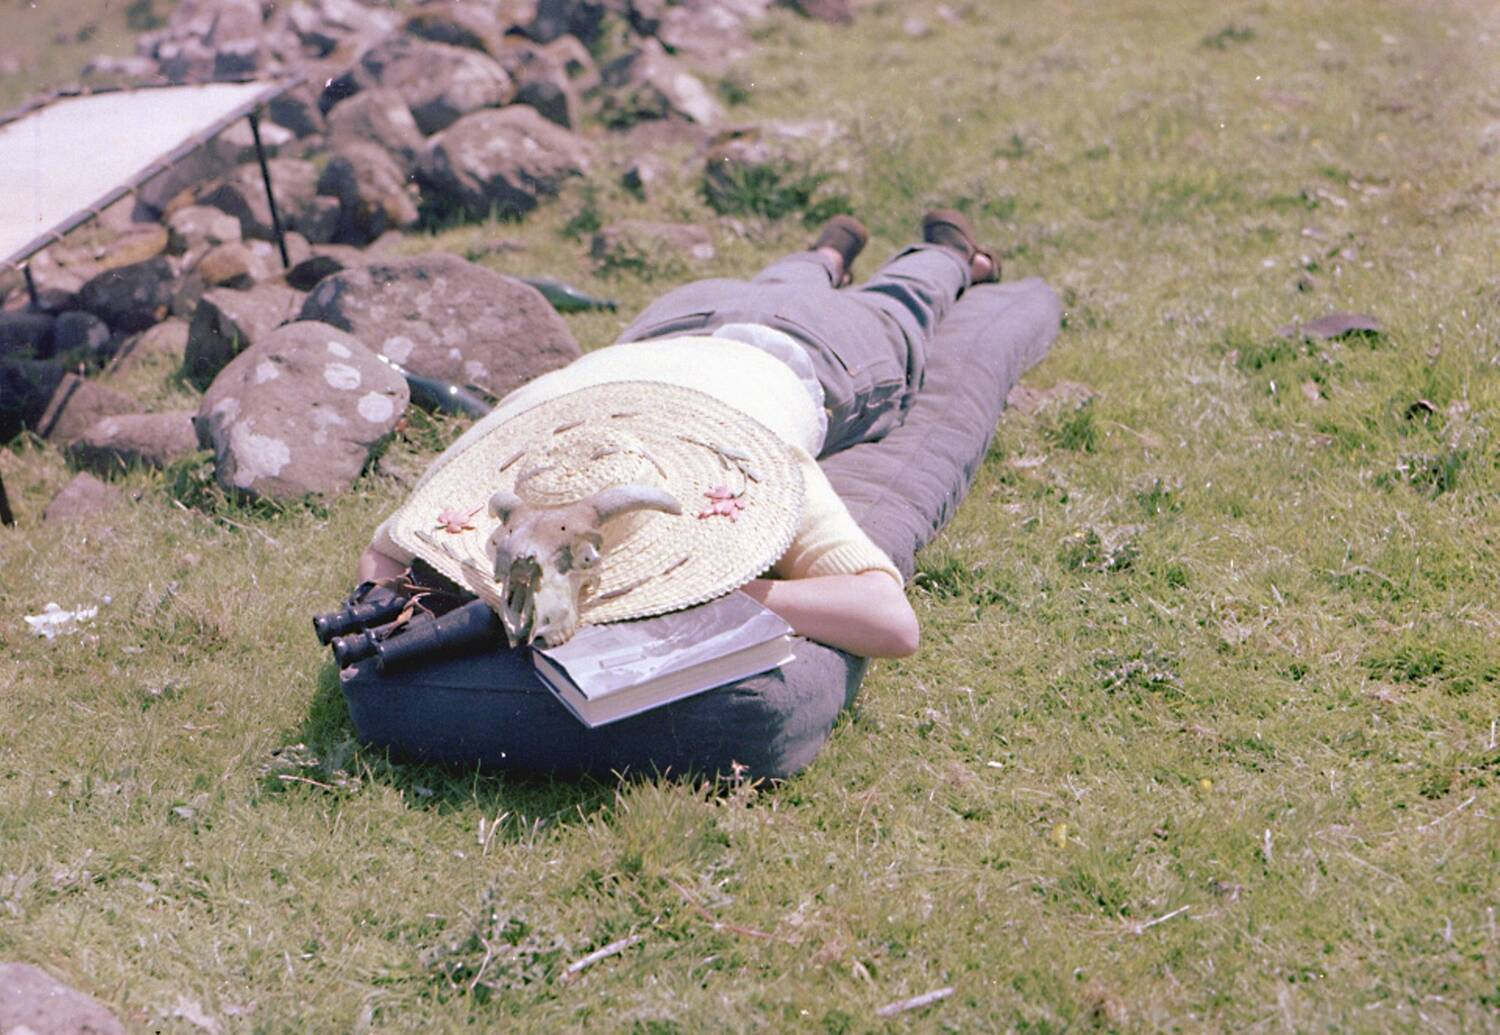 A lady lies on her tummy on the grass, with a straw hat covering her head. A book and some binoculars lie by her head. A sheep's skull has been balanced on the hat.